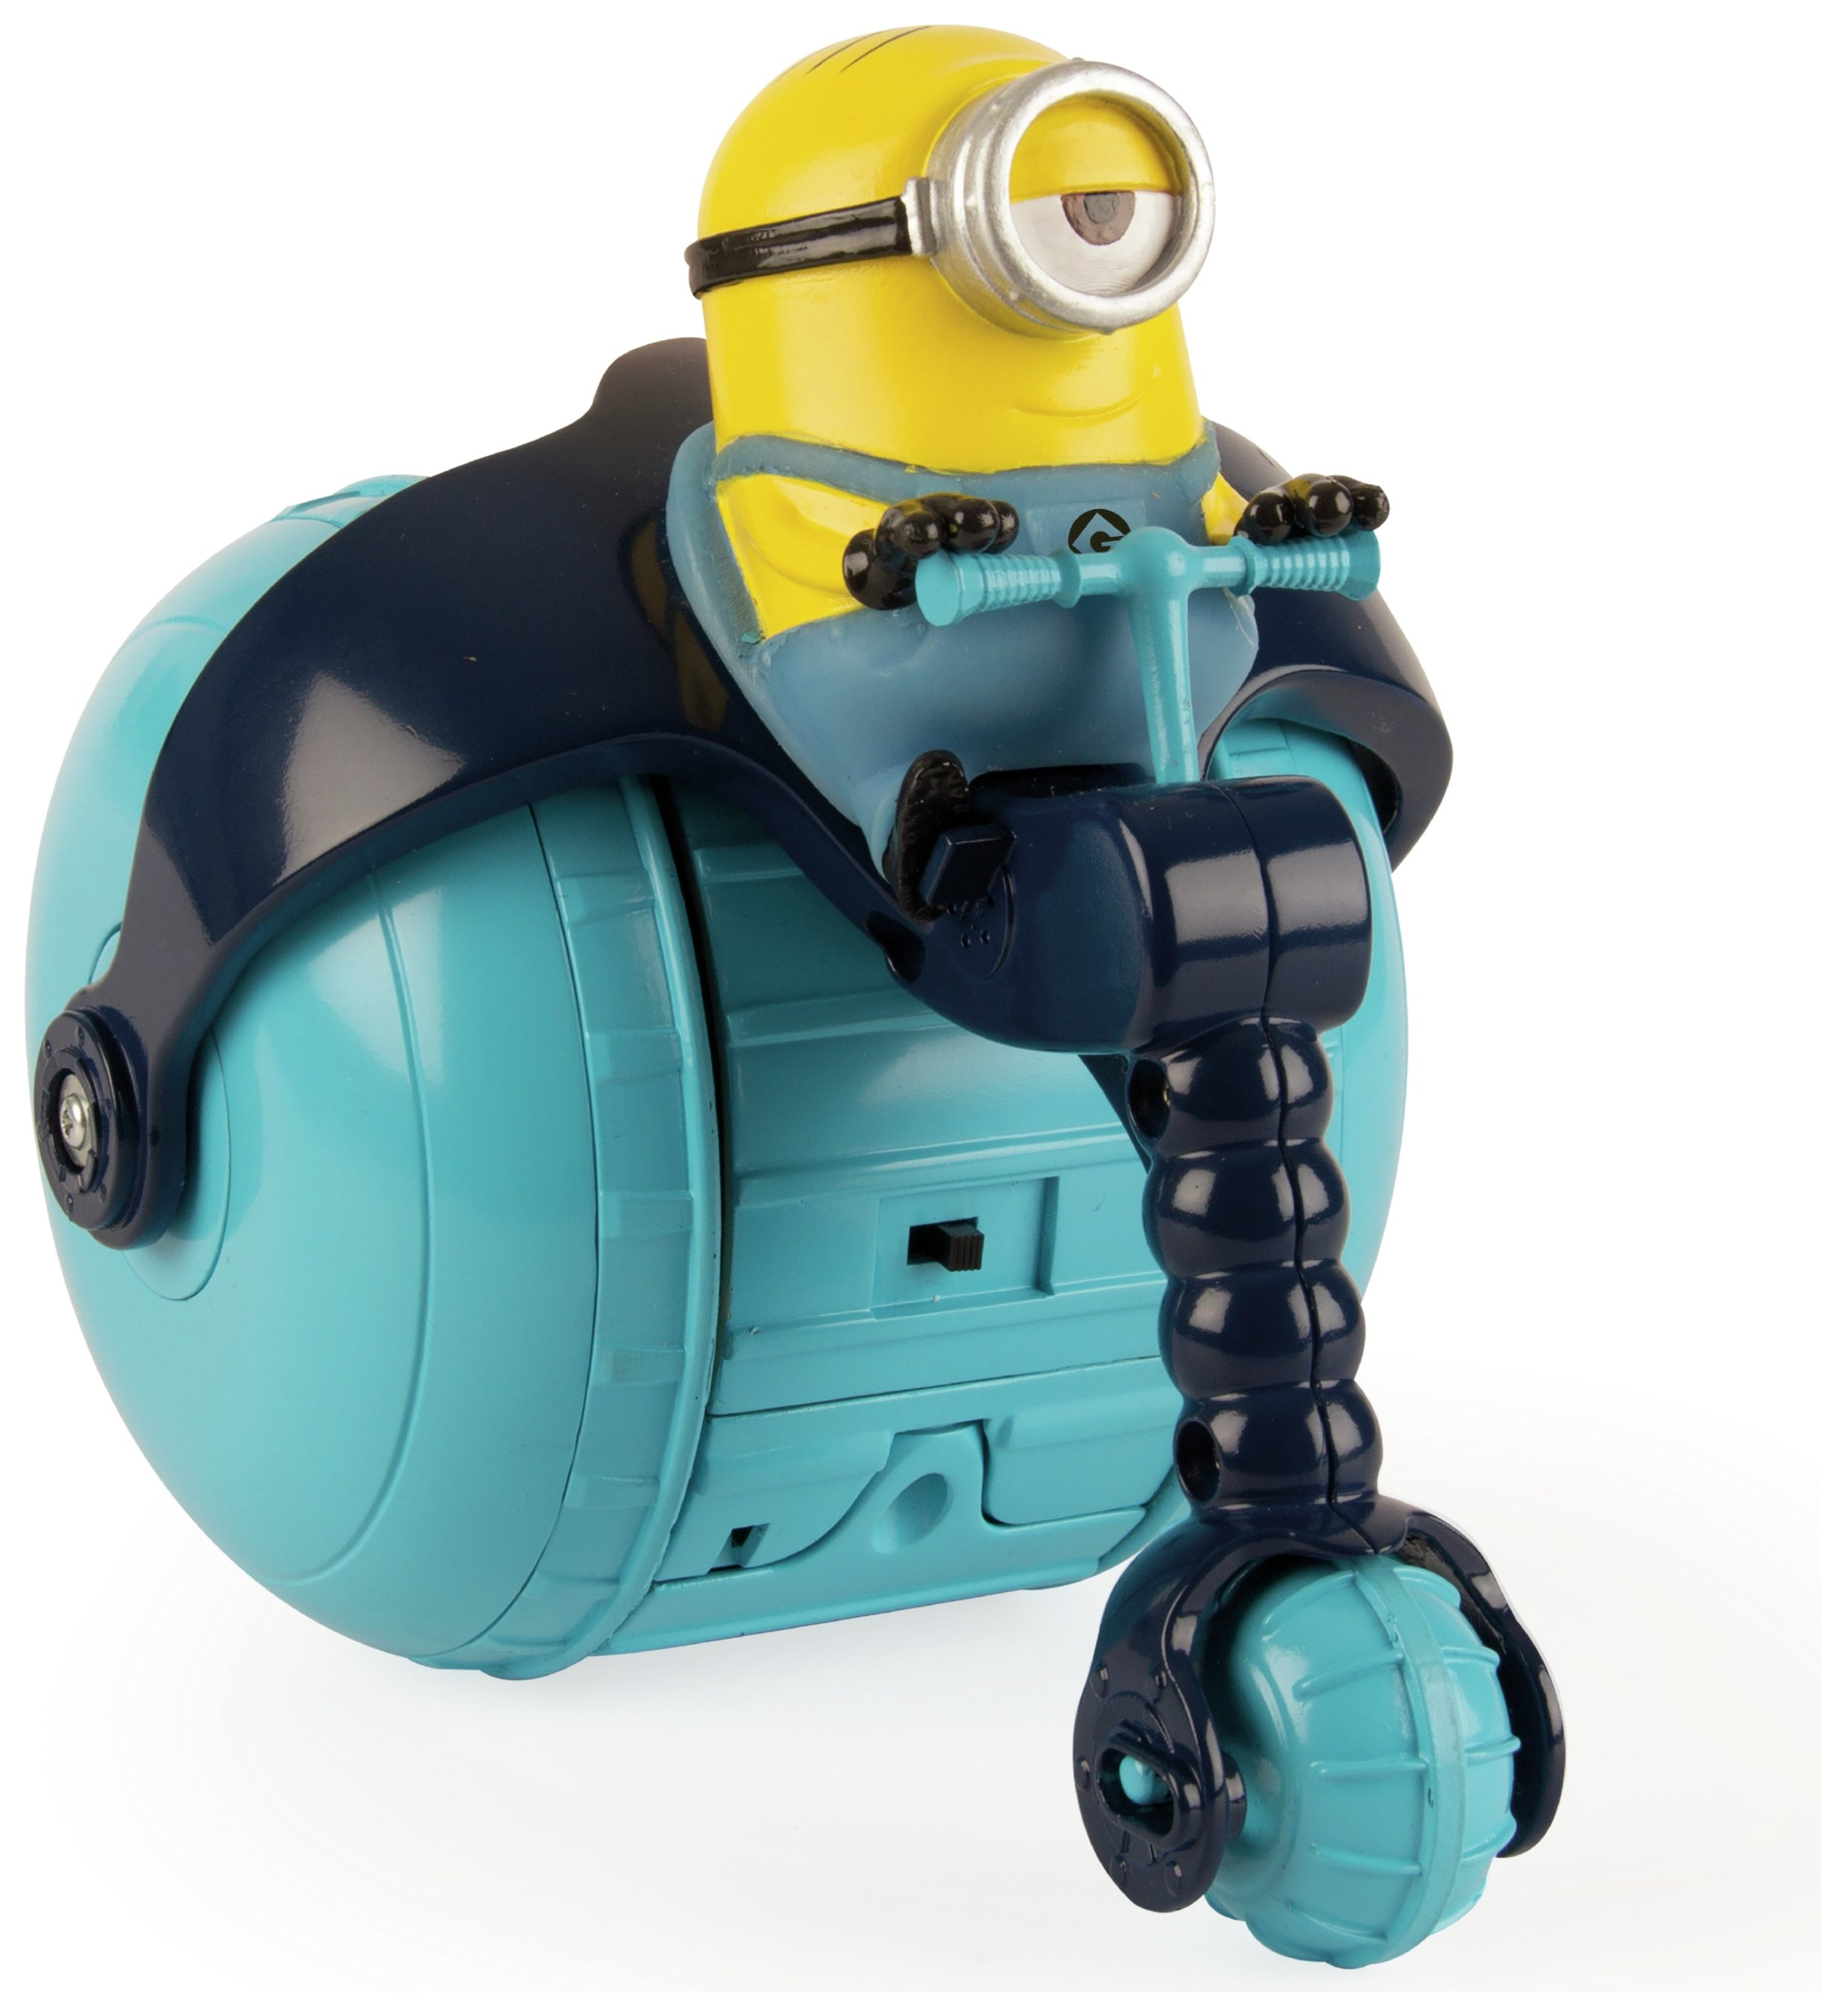 Image of Despicable Me 3 Minions RC Car